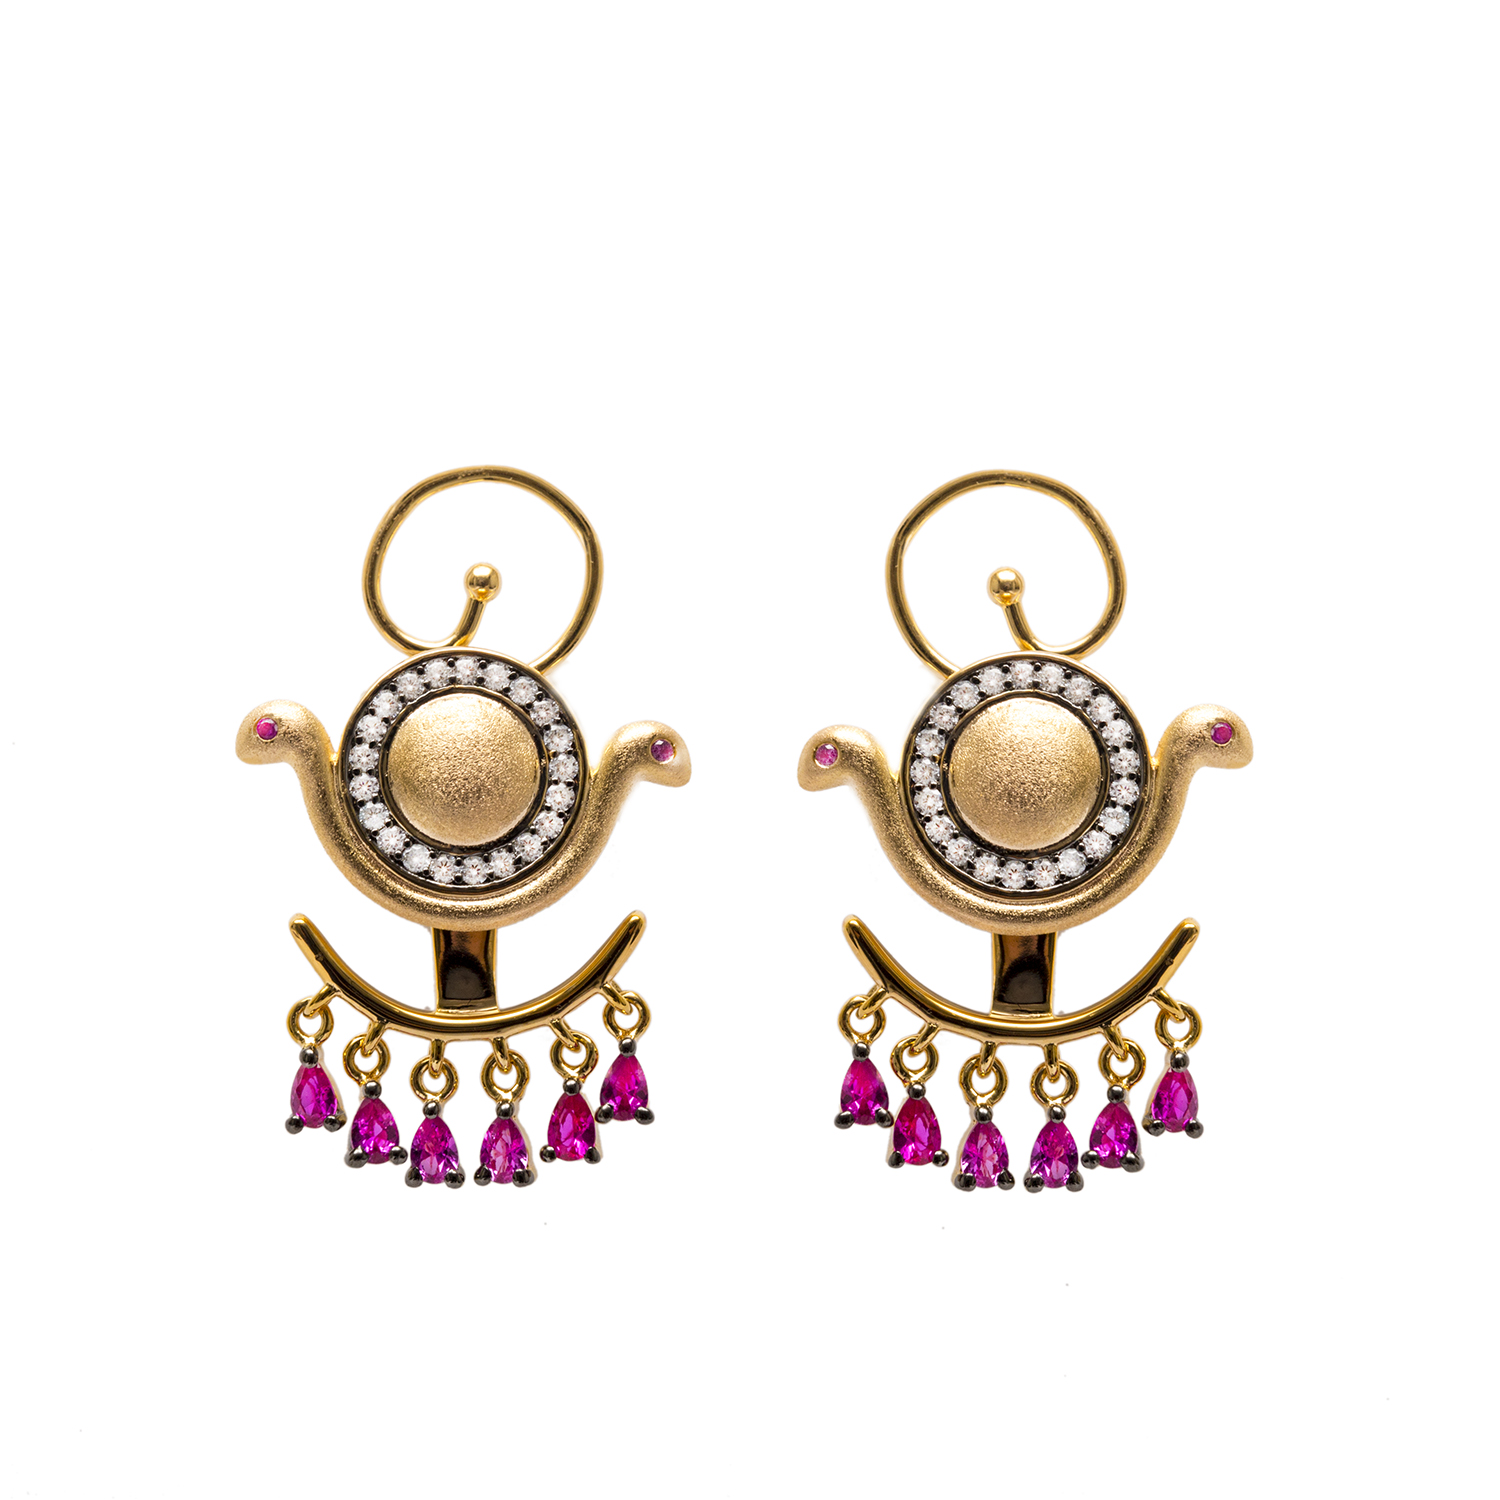 Goddess Wadjet Ear Jacket Earrings with Gemstones by AMMANII on curated-crowd.com